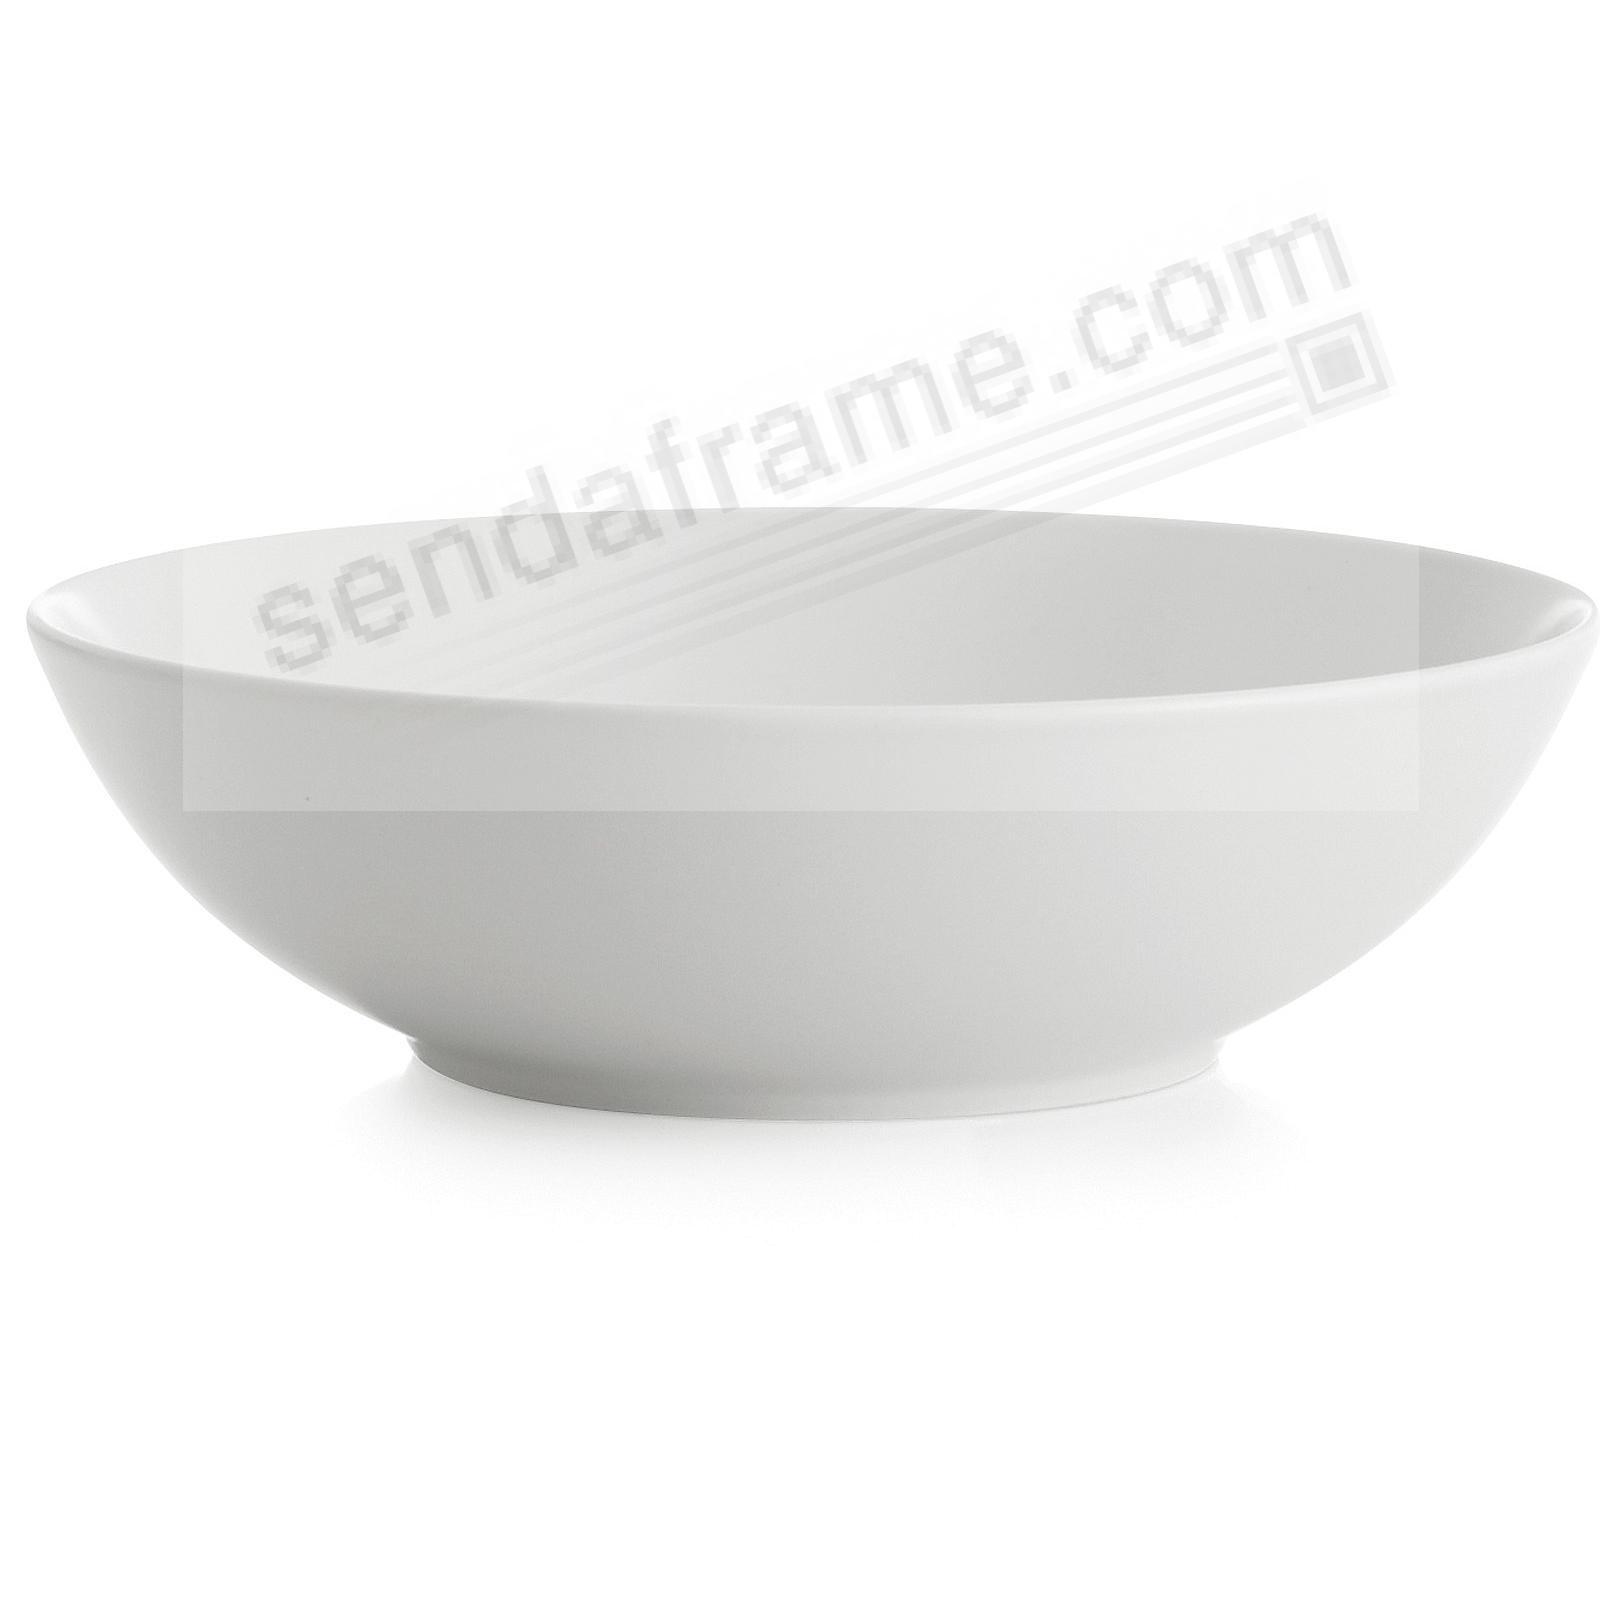 POP SOUP/CEREAL BOWL CHALK-WHITE by Nambe®